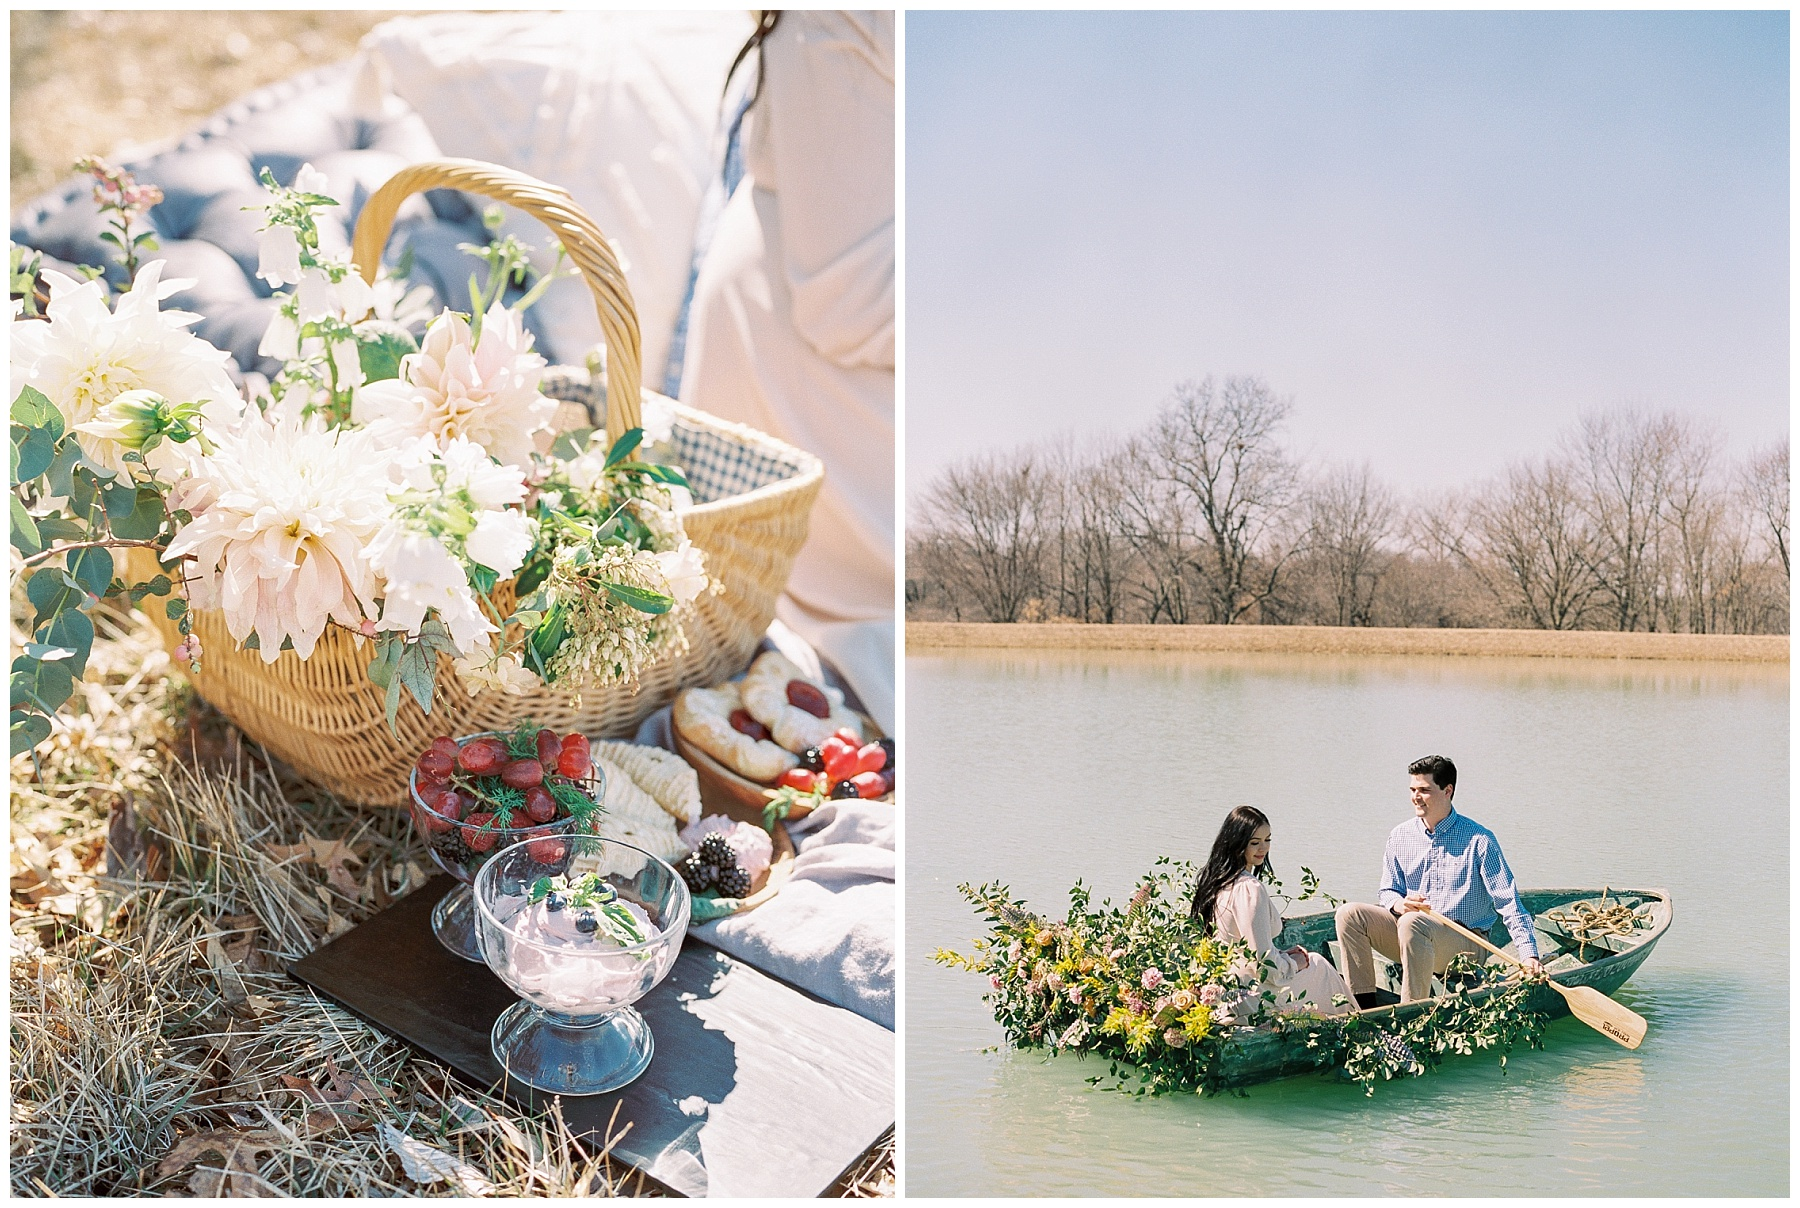 Late Fall Farm-to-table Inspired Brunch Picnic Engagement Session During Wedding Weekend by Kelsi Kliethermes Photography Best Missouri and Maui Wedding Photographer_0016.jpg